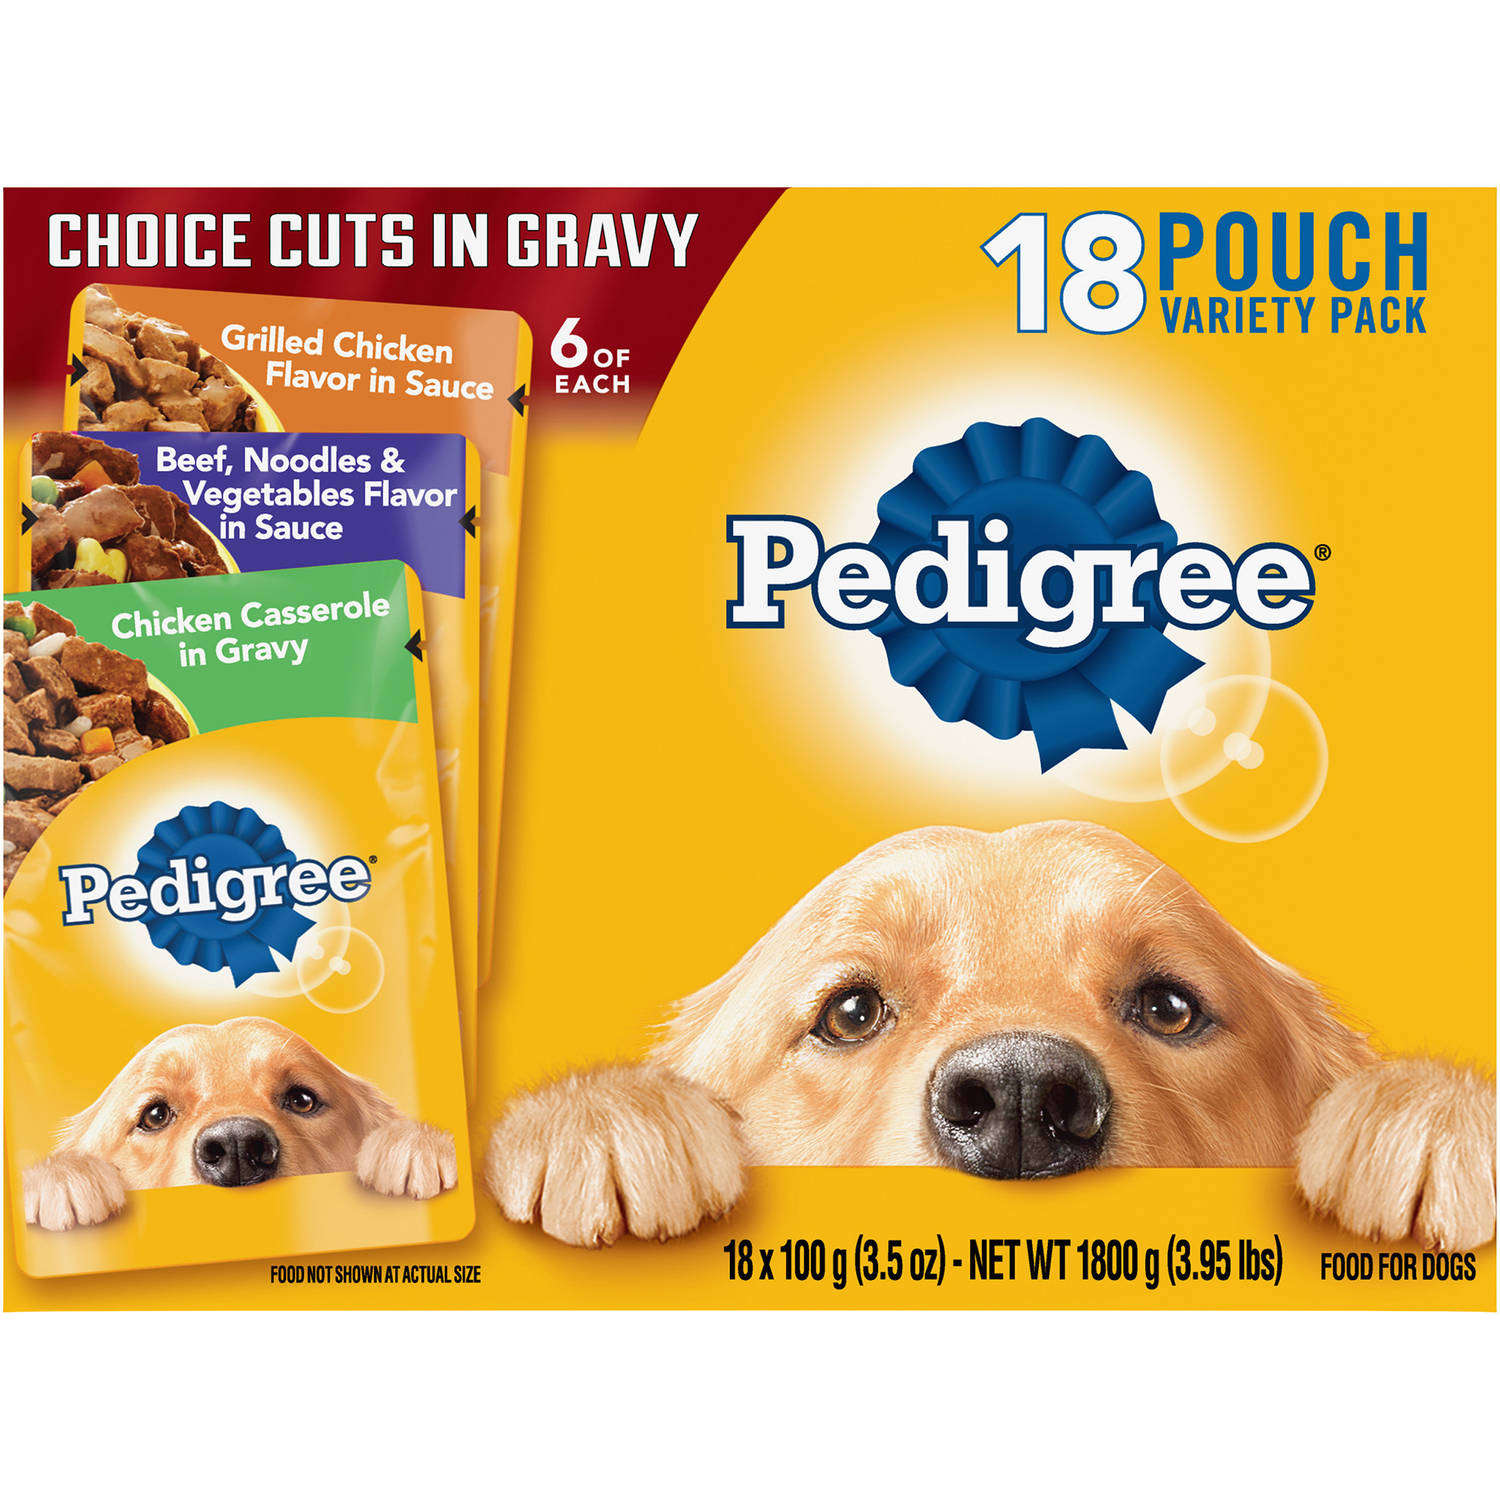 Pedigree Choice Cuts Variety Pack Grilled Chicken, Beef & Chicken Casserole Dog Food, 3.5 oz (18 Count)